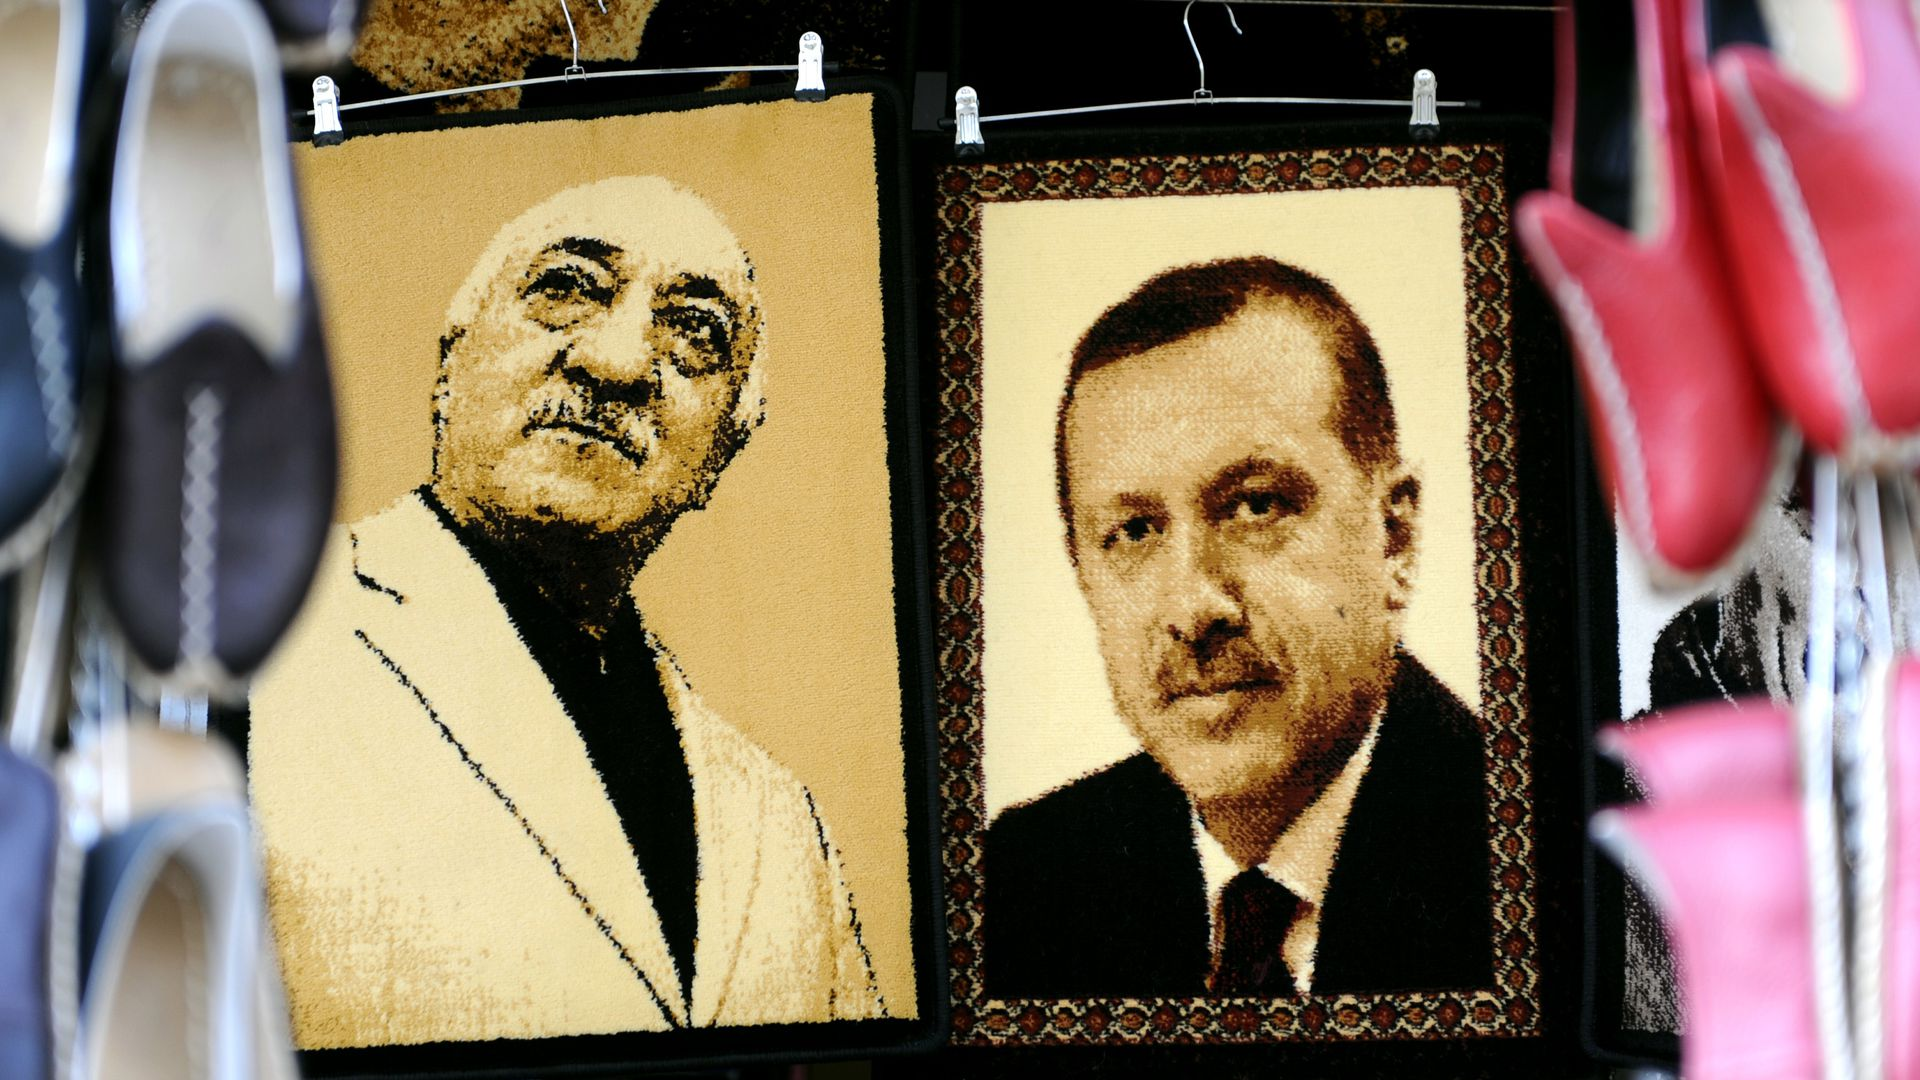 Embroidered images of Turkish cleric Fetullah Gulen (L) and President Recep Tayyip Erdogan (R)